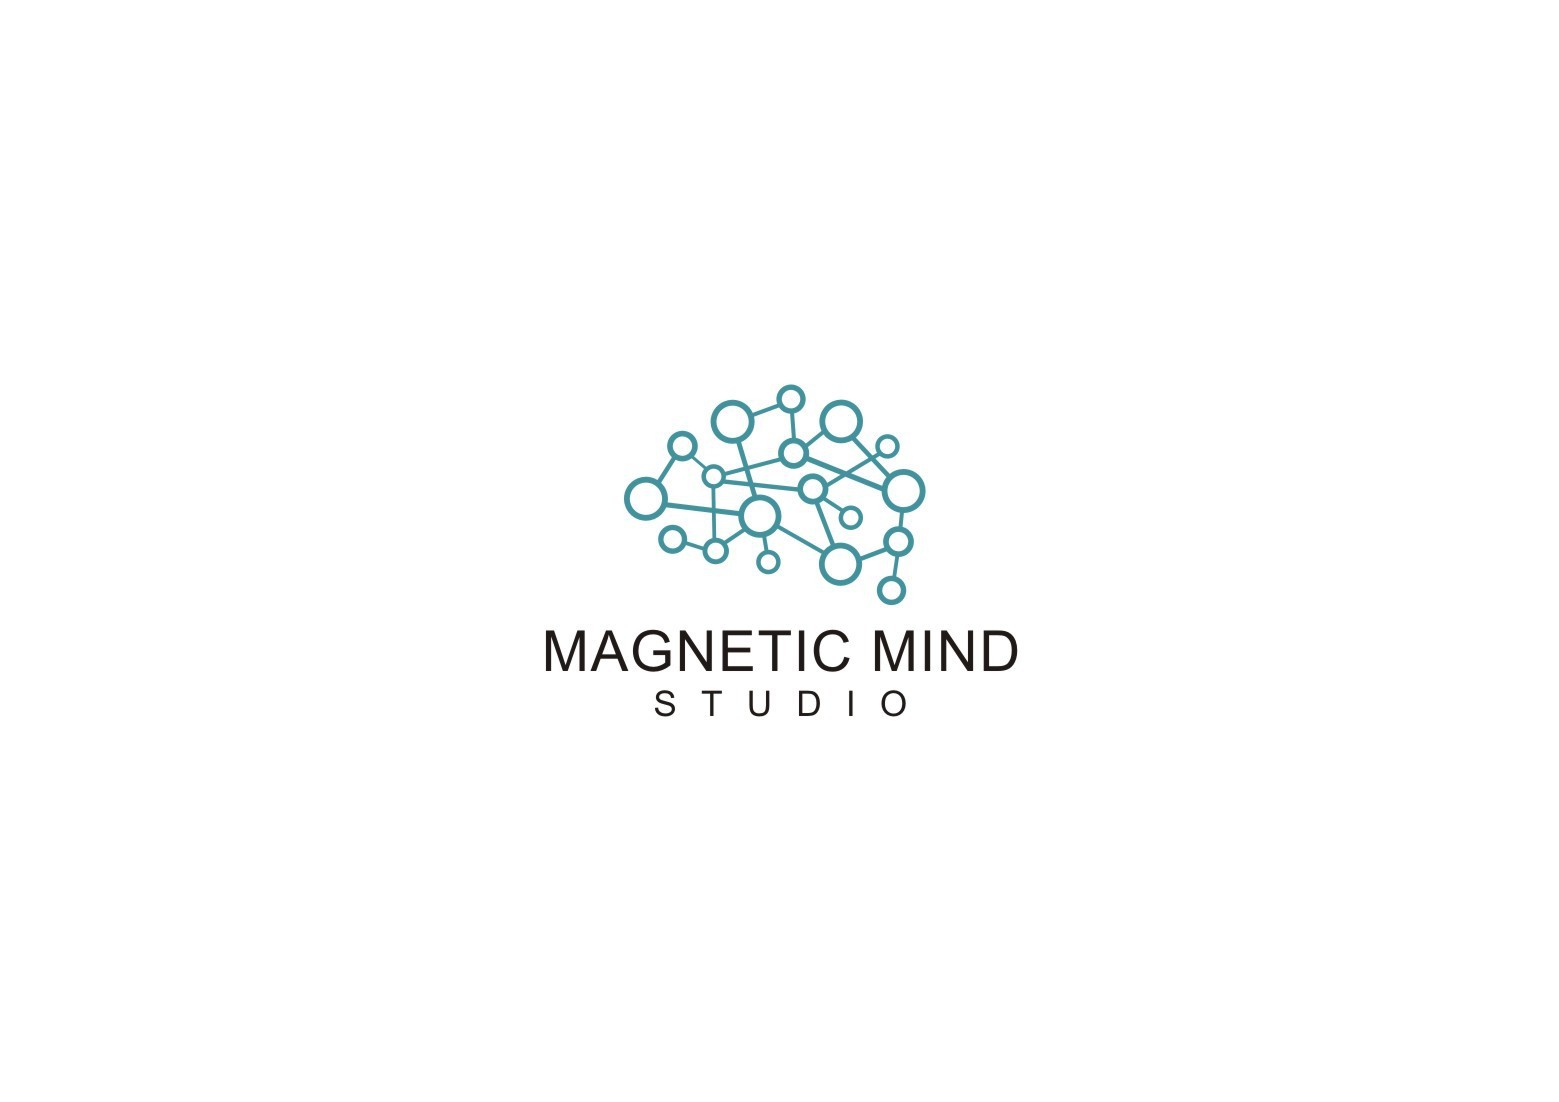 Can you create a logo that blends neurology and sophisticated design?